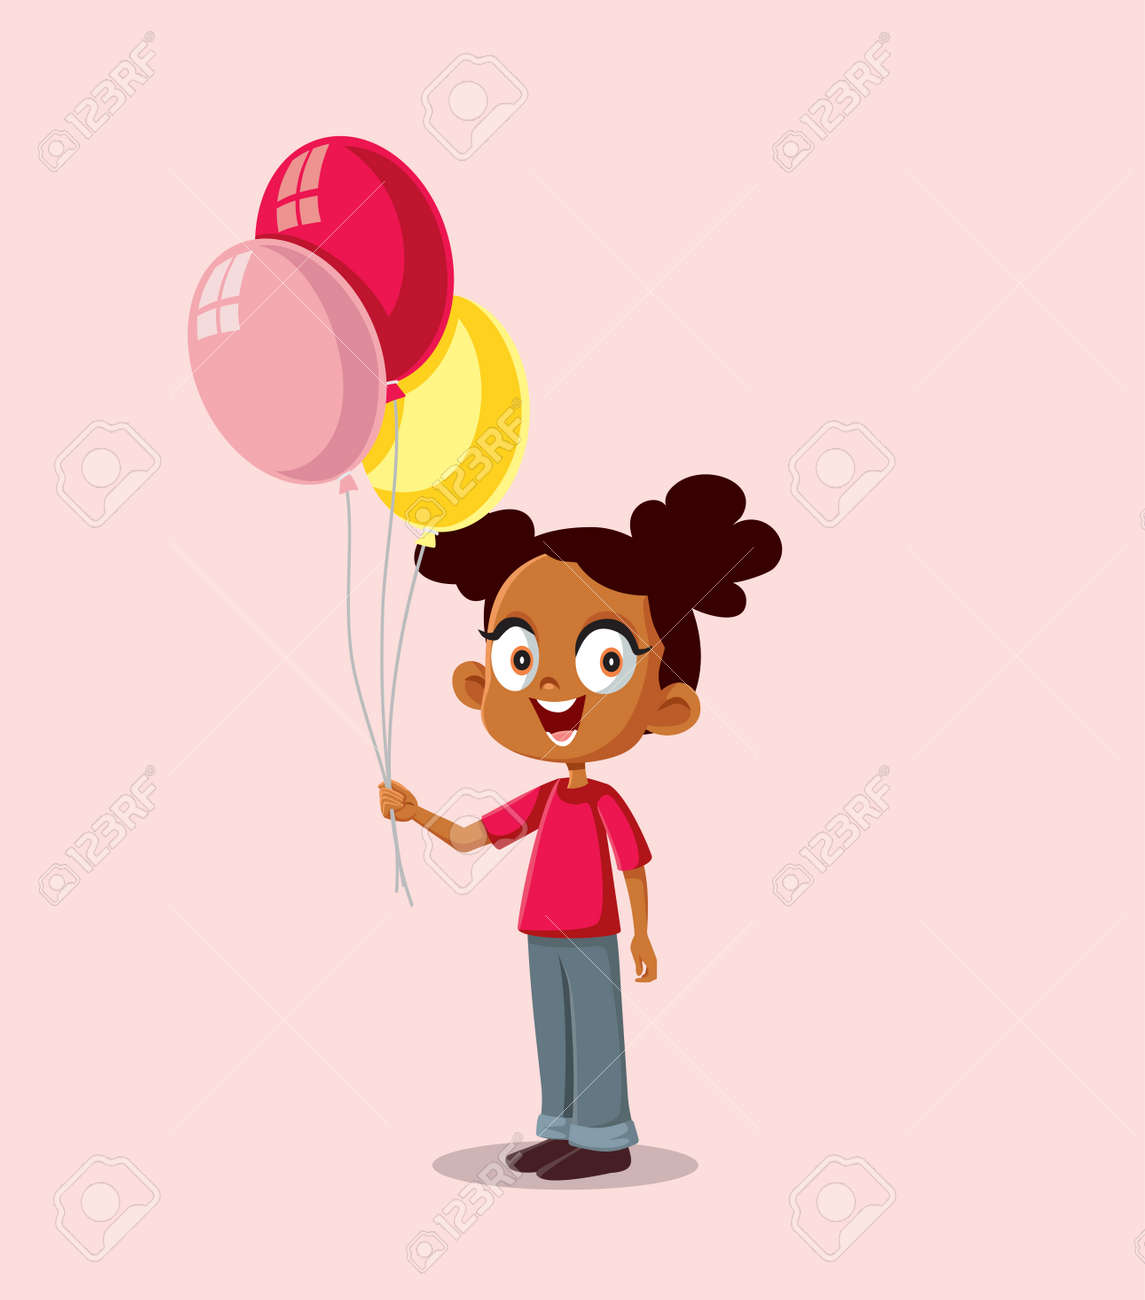 Happy African Girl Holding Balloons Vector Illustration - 171703804